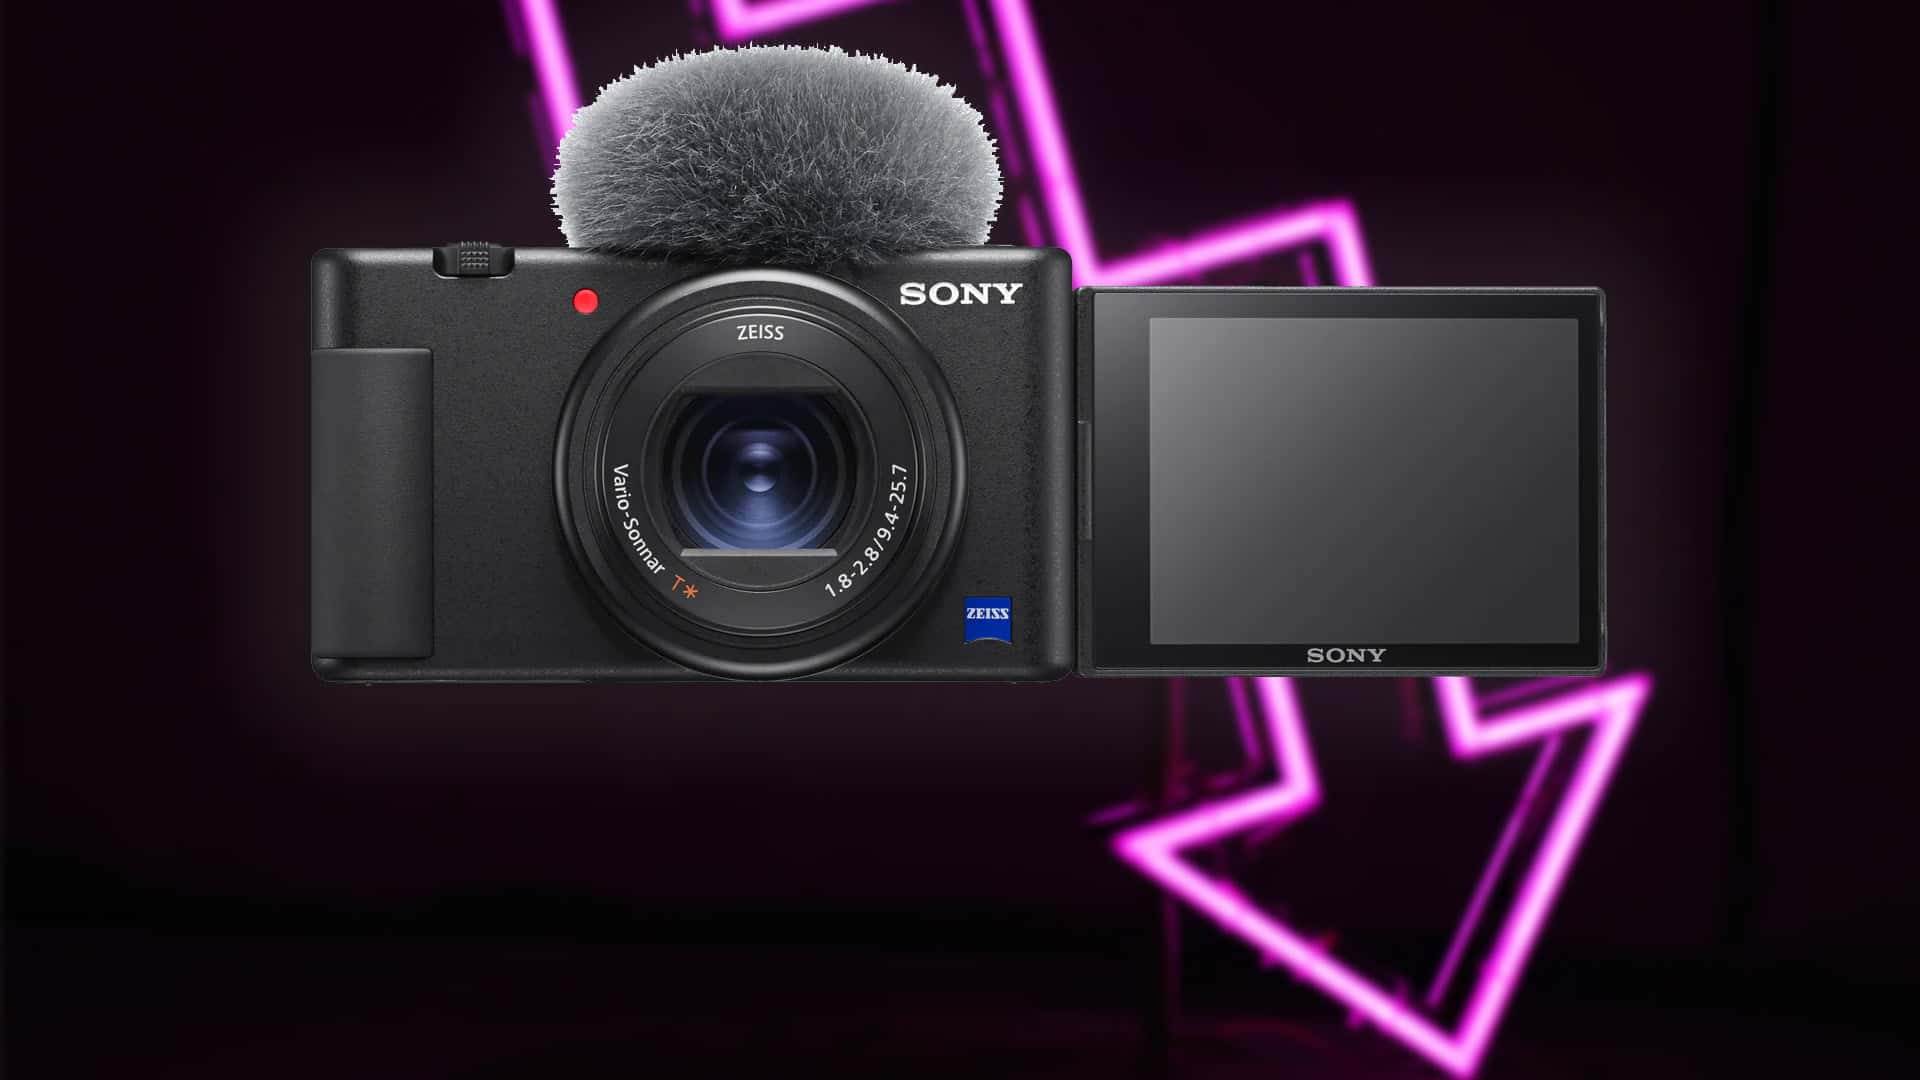 Four reasons I won't be considering the Sony ZV-1